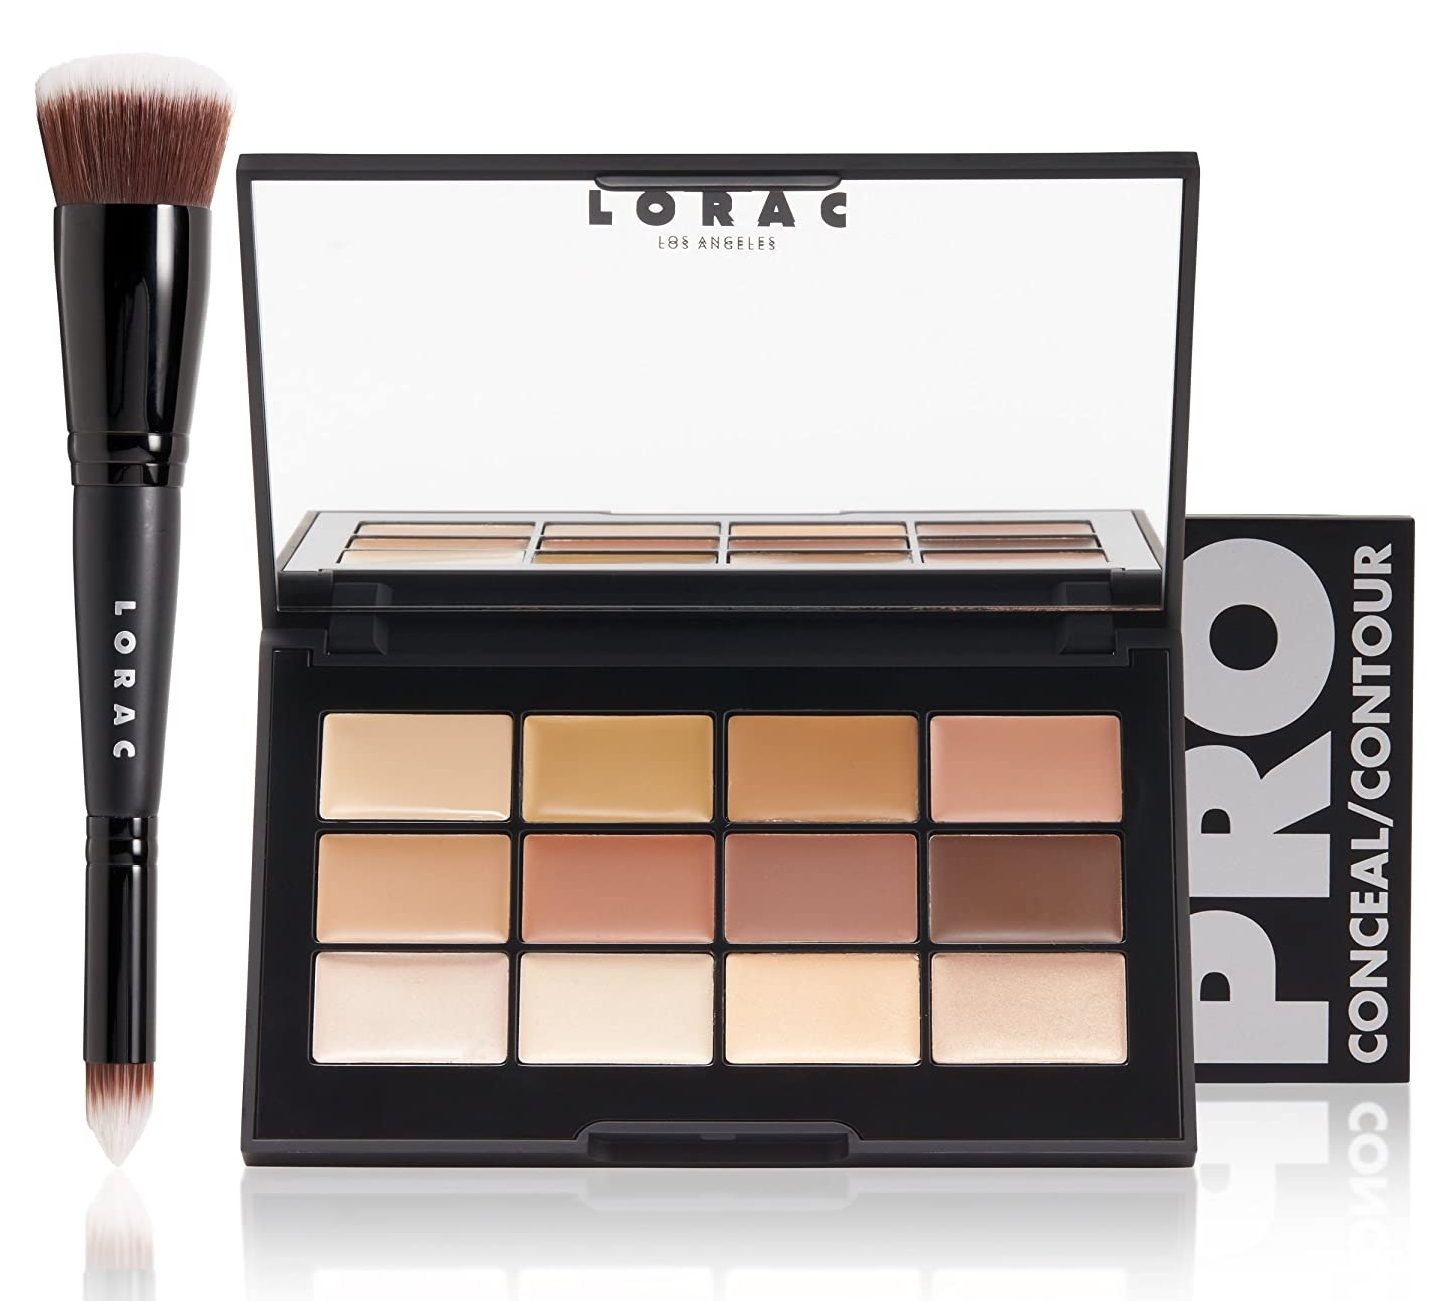 Lorac Pro Conceal and Contour Amazon Prime Day 2020